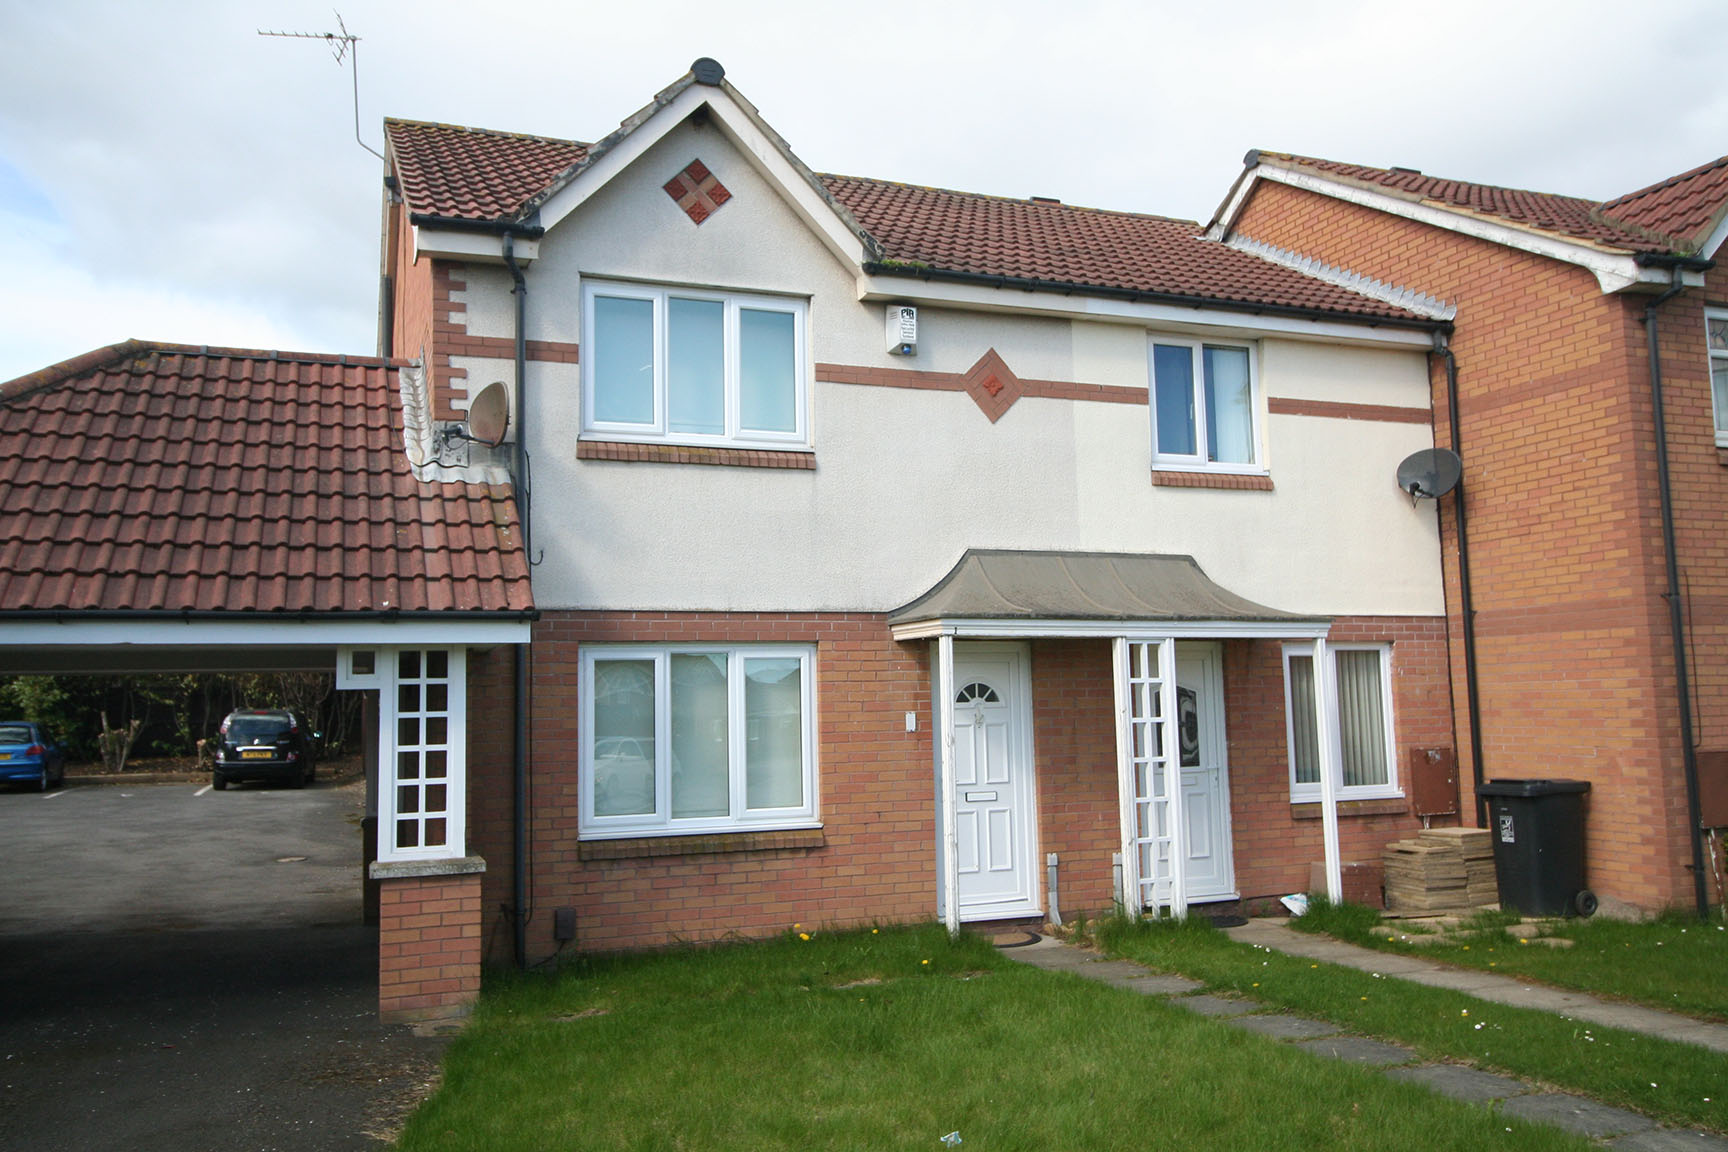 Home for Sale Let - Photo 01 Gatesgarth Close,  Bakers Mead, Hartlepool, TS24 8RB